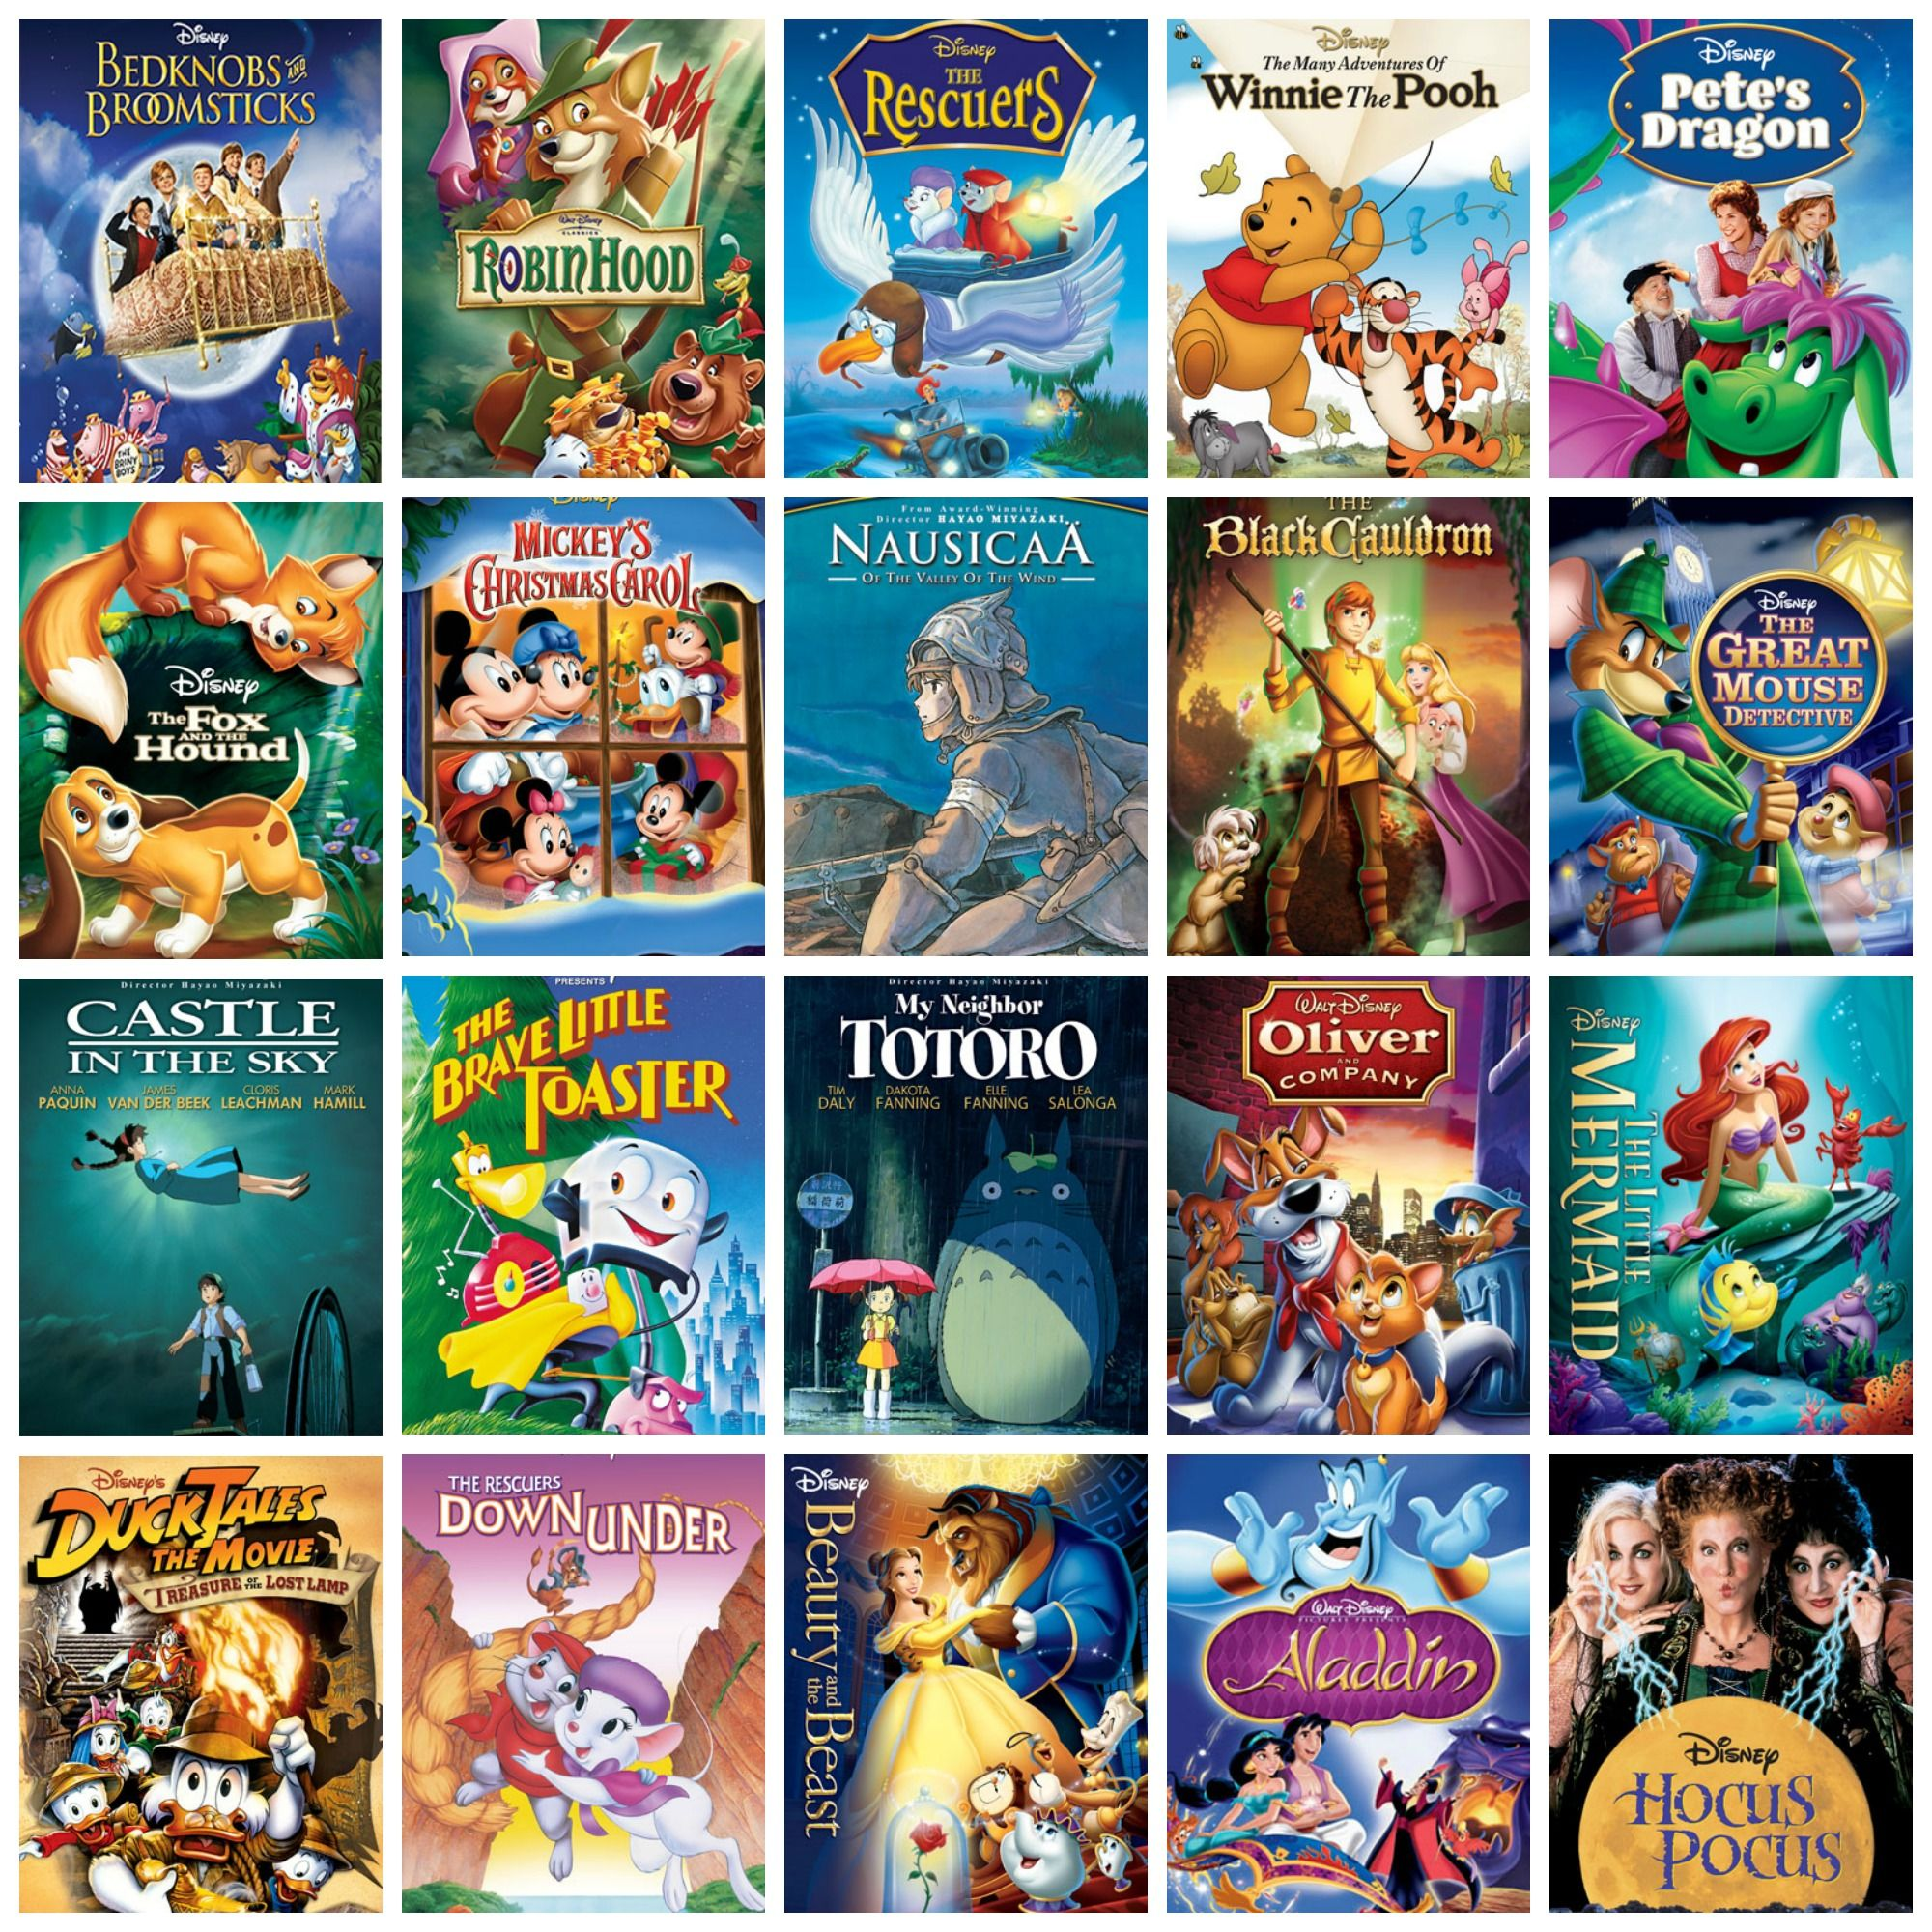 1971 1993 Disney Movies In Order Of Release Filmes